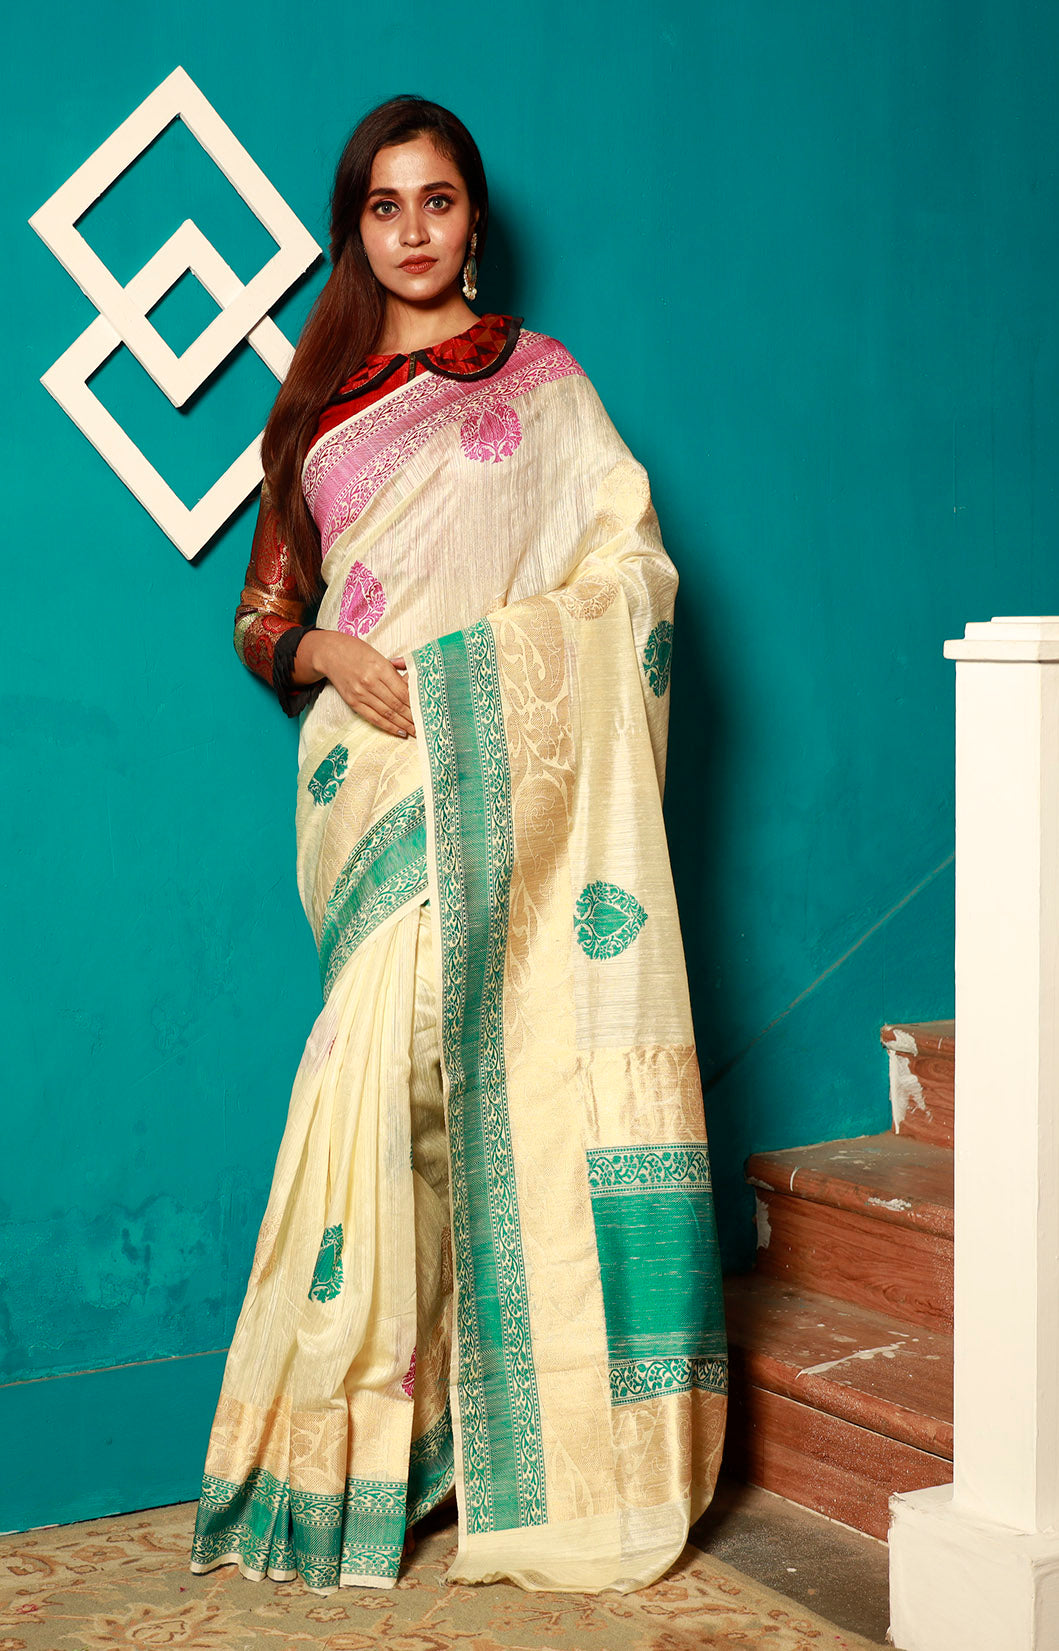 Khadi Banarasi Saree - Keya Seth Exclusive